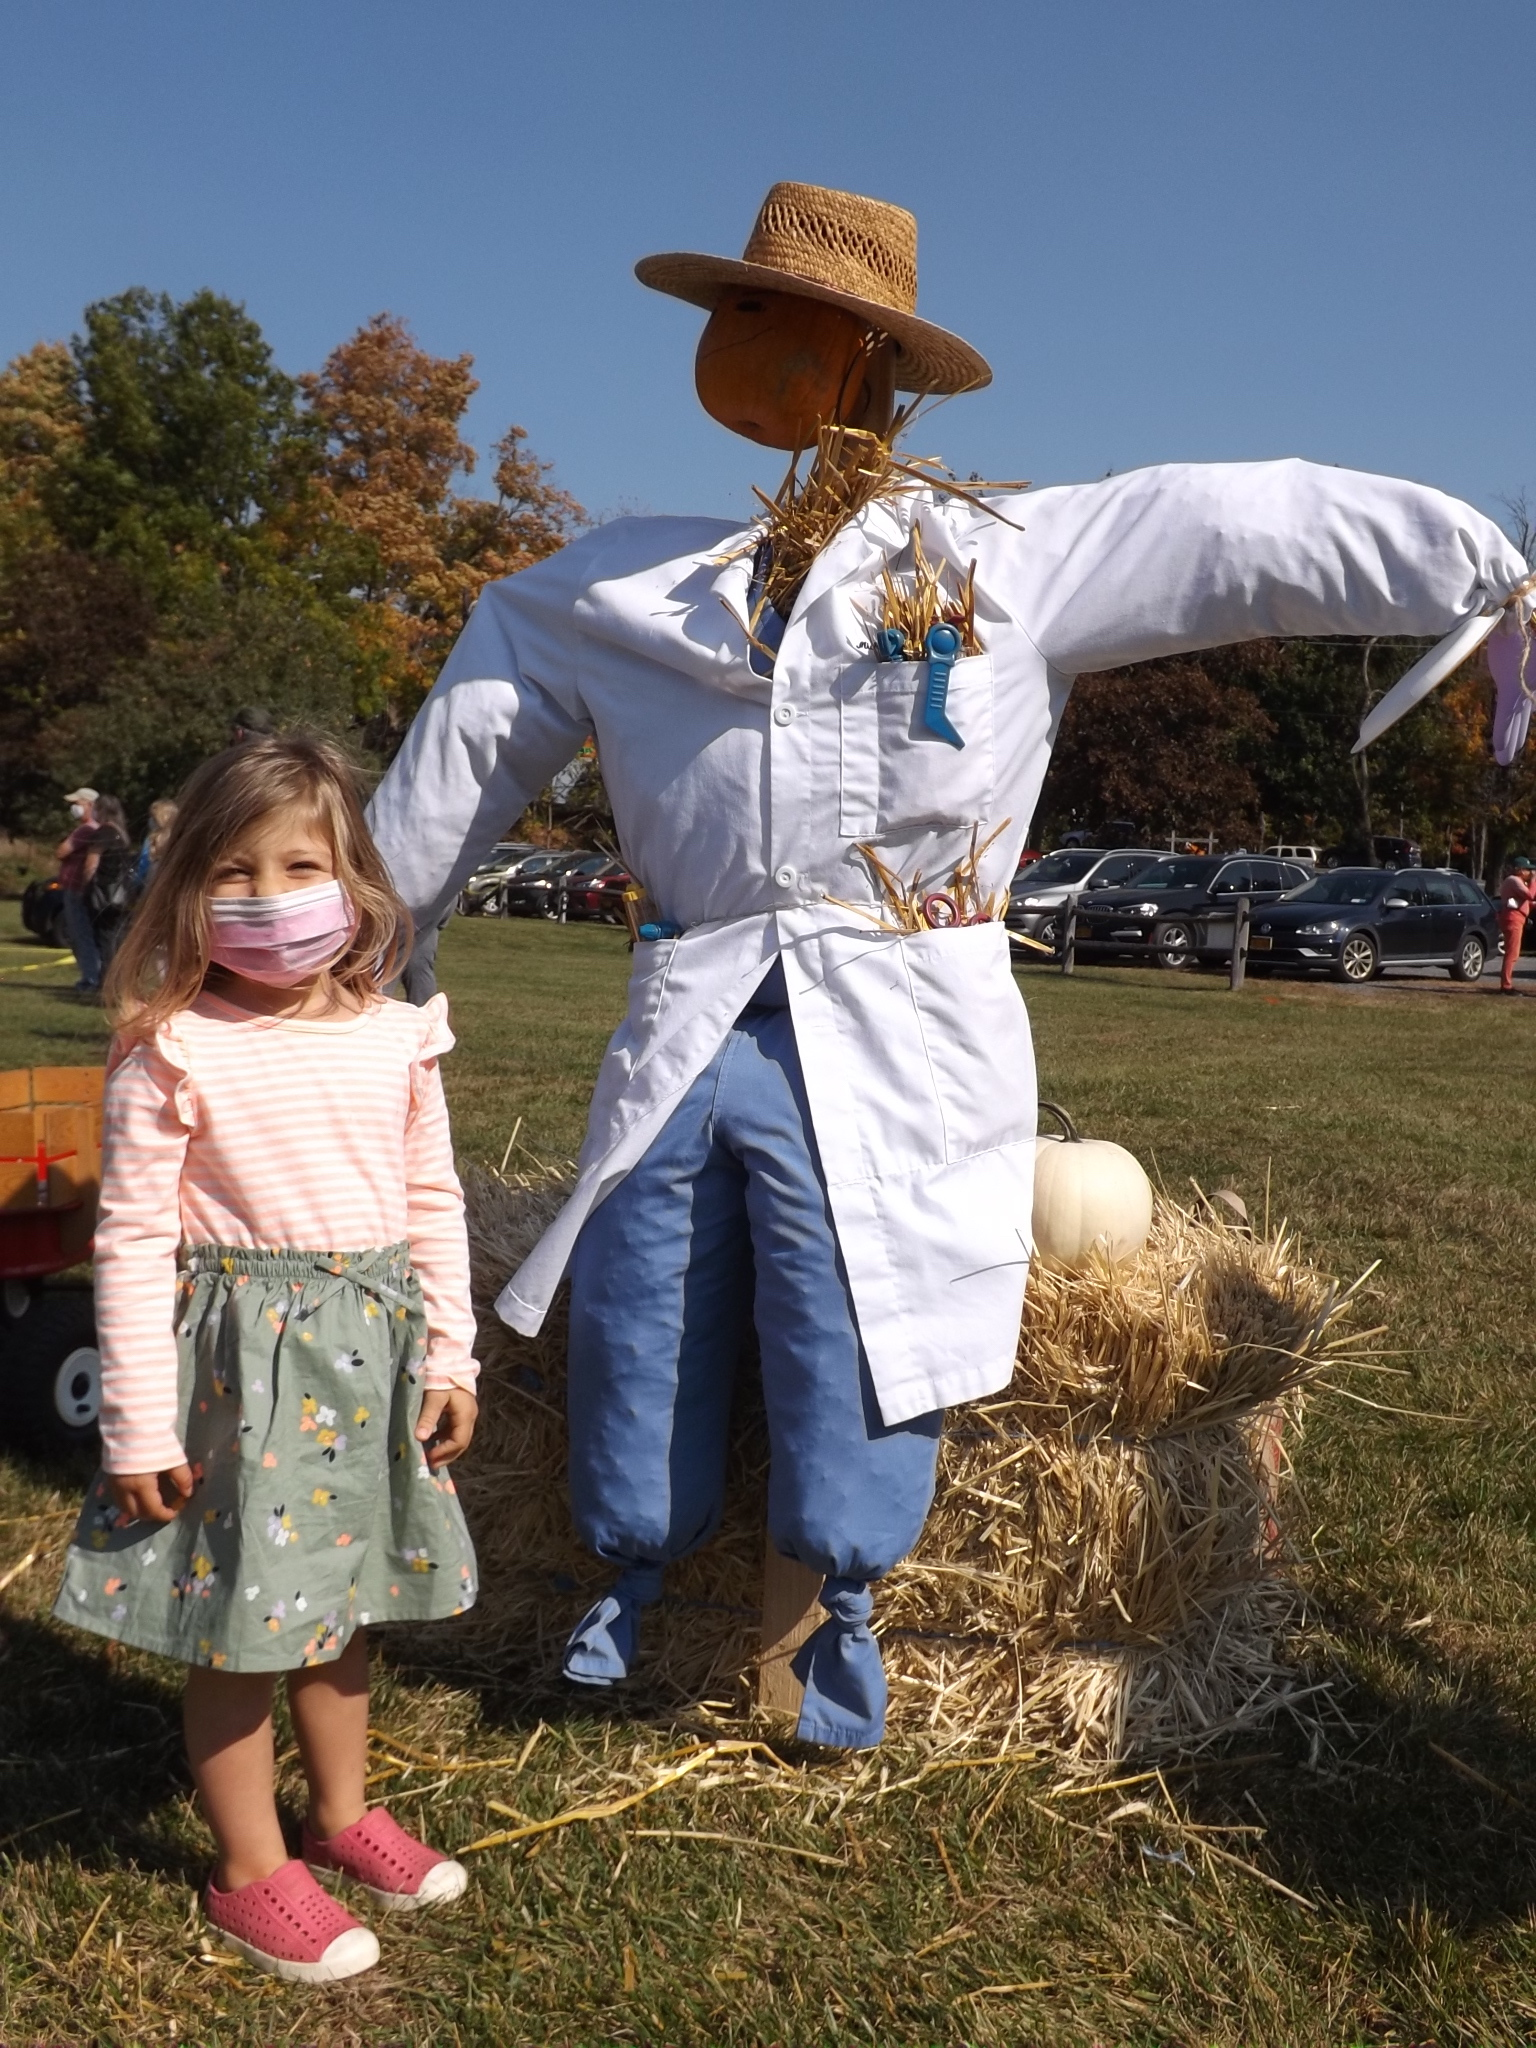 <strong>Leya Baron, 3, above, checked in with Dr. Scarecrow, which Shannon Mays (not pictured) fashioned for Hillsdale's ninth annual Pumpkin Festival on Saturday, Oct. 10.<em>Photo by Kaitlin Lyle</em></strong>